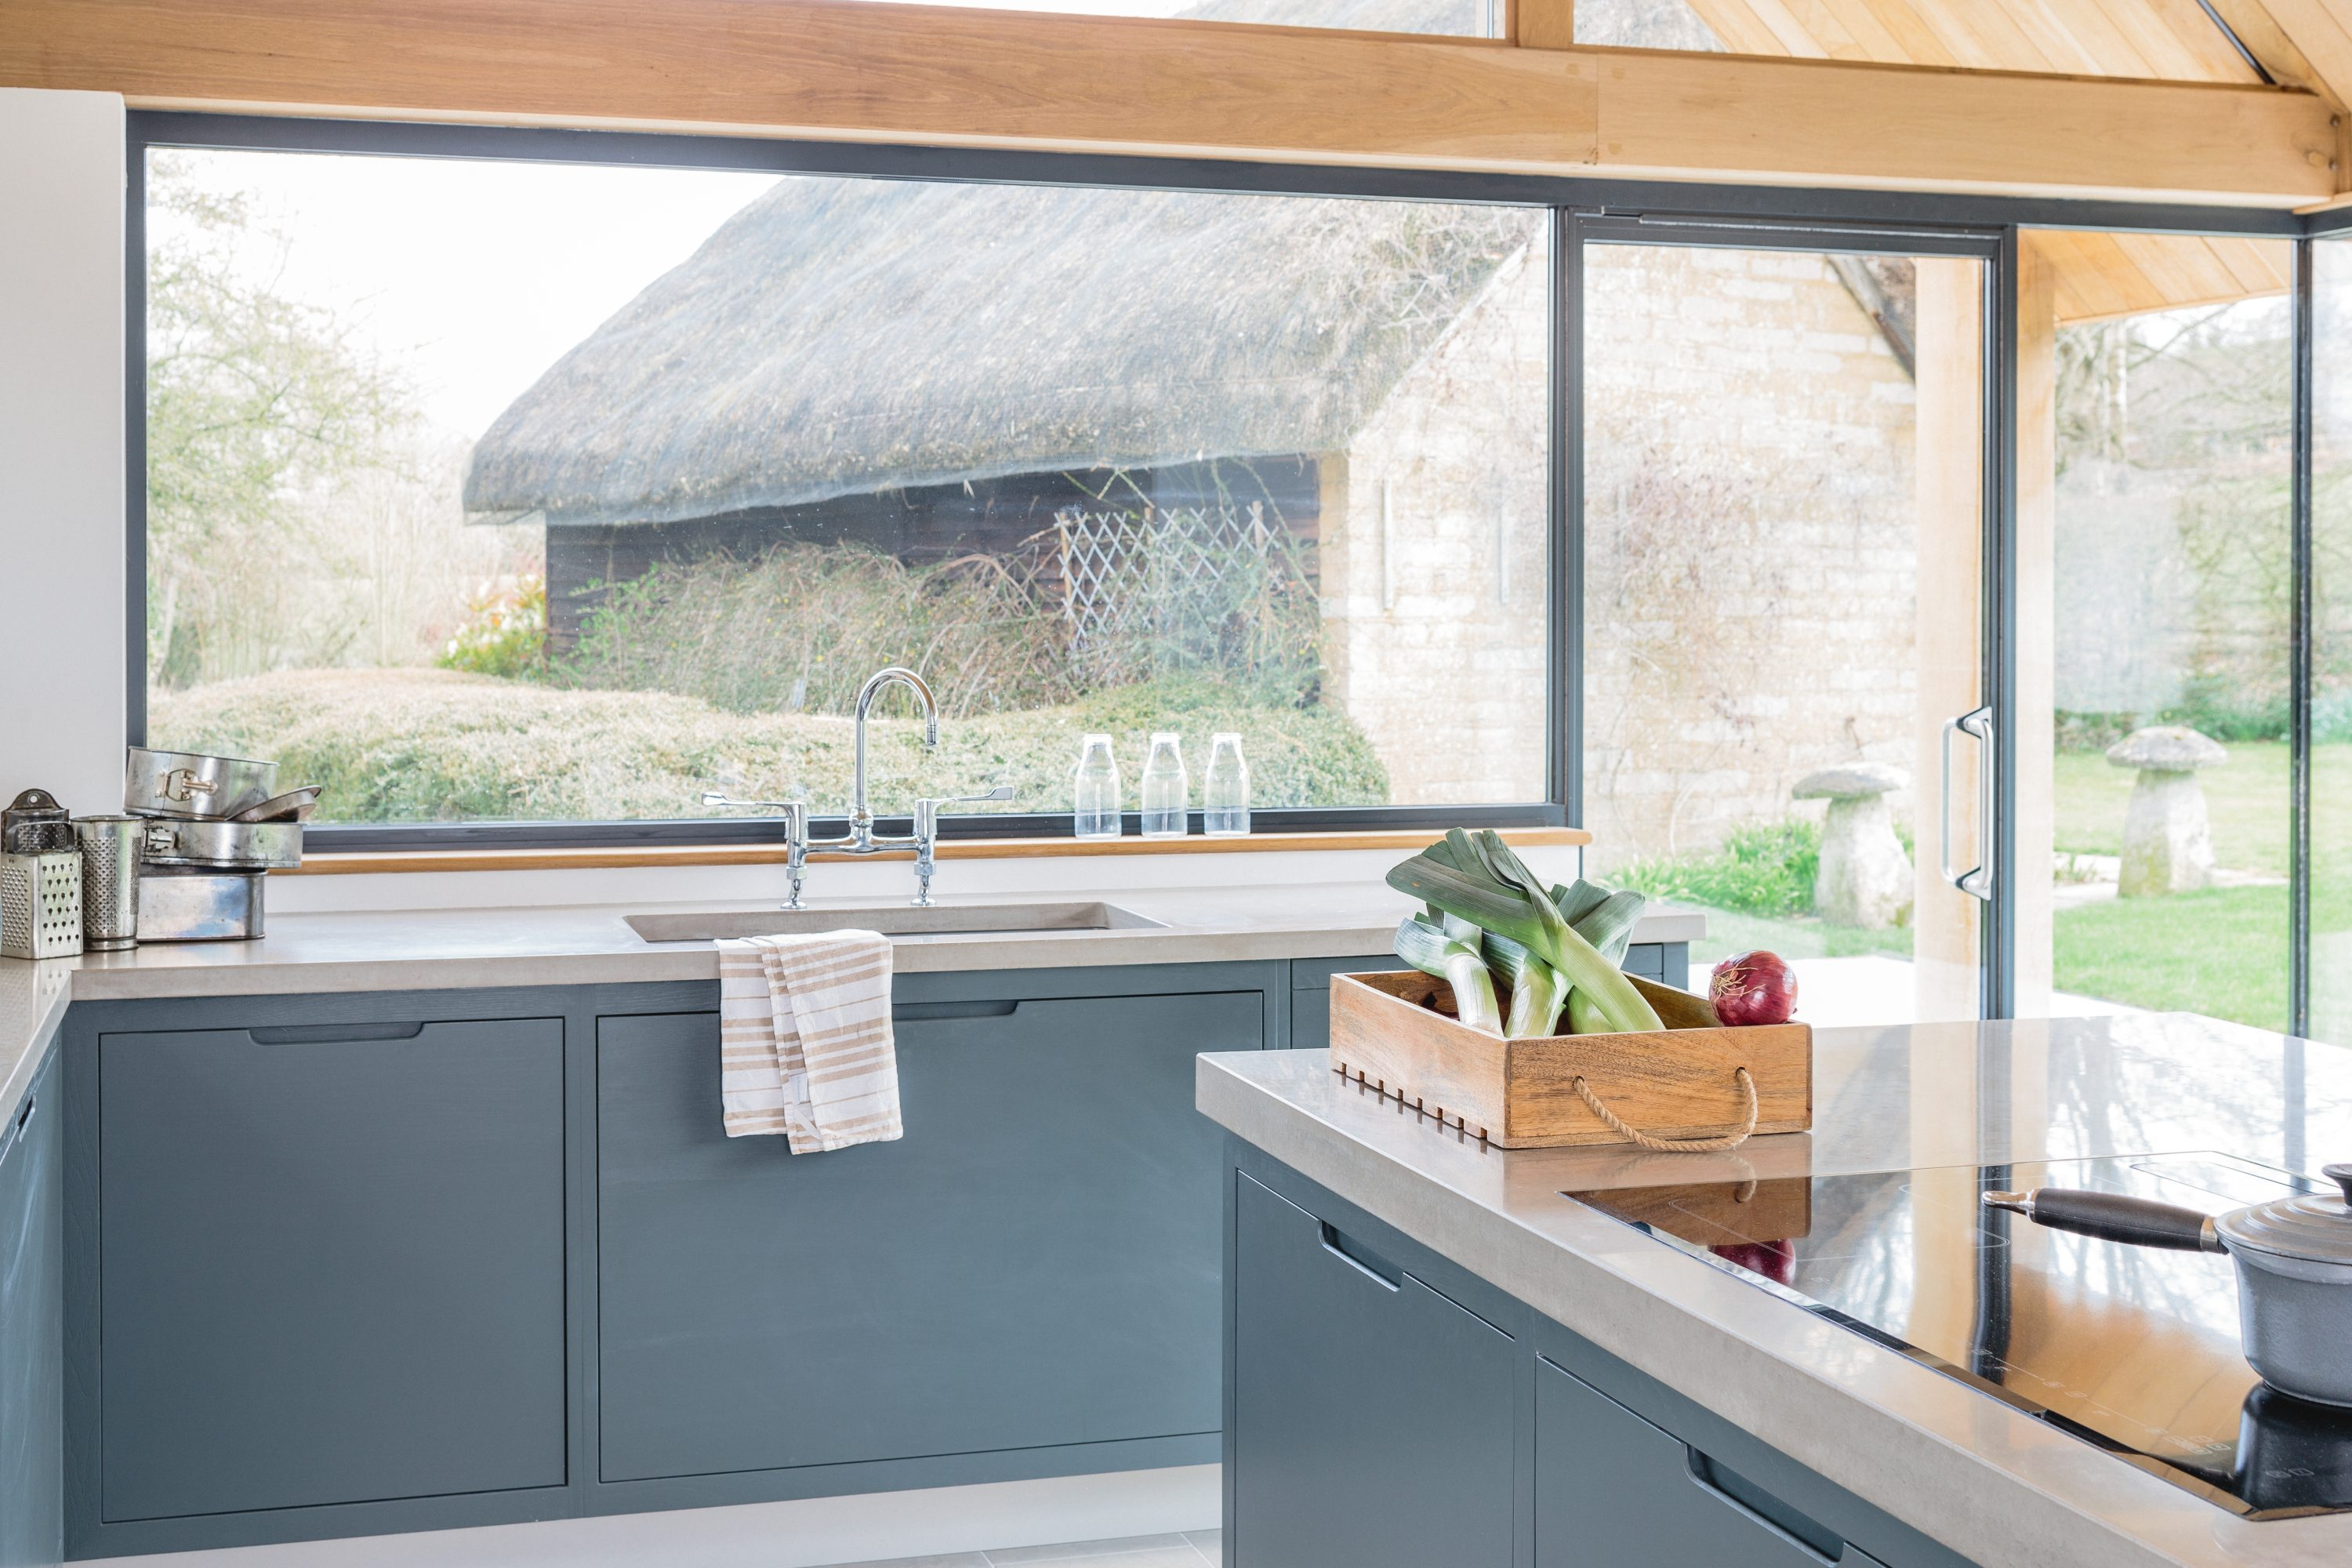 Advice Articles - Sustainable Kitchens